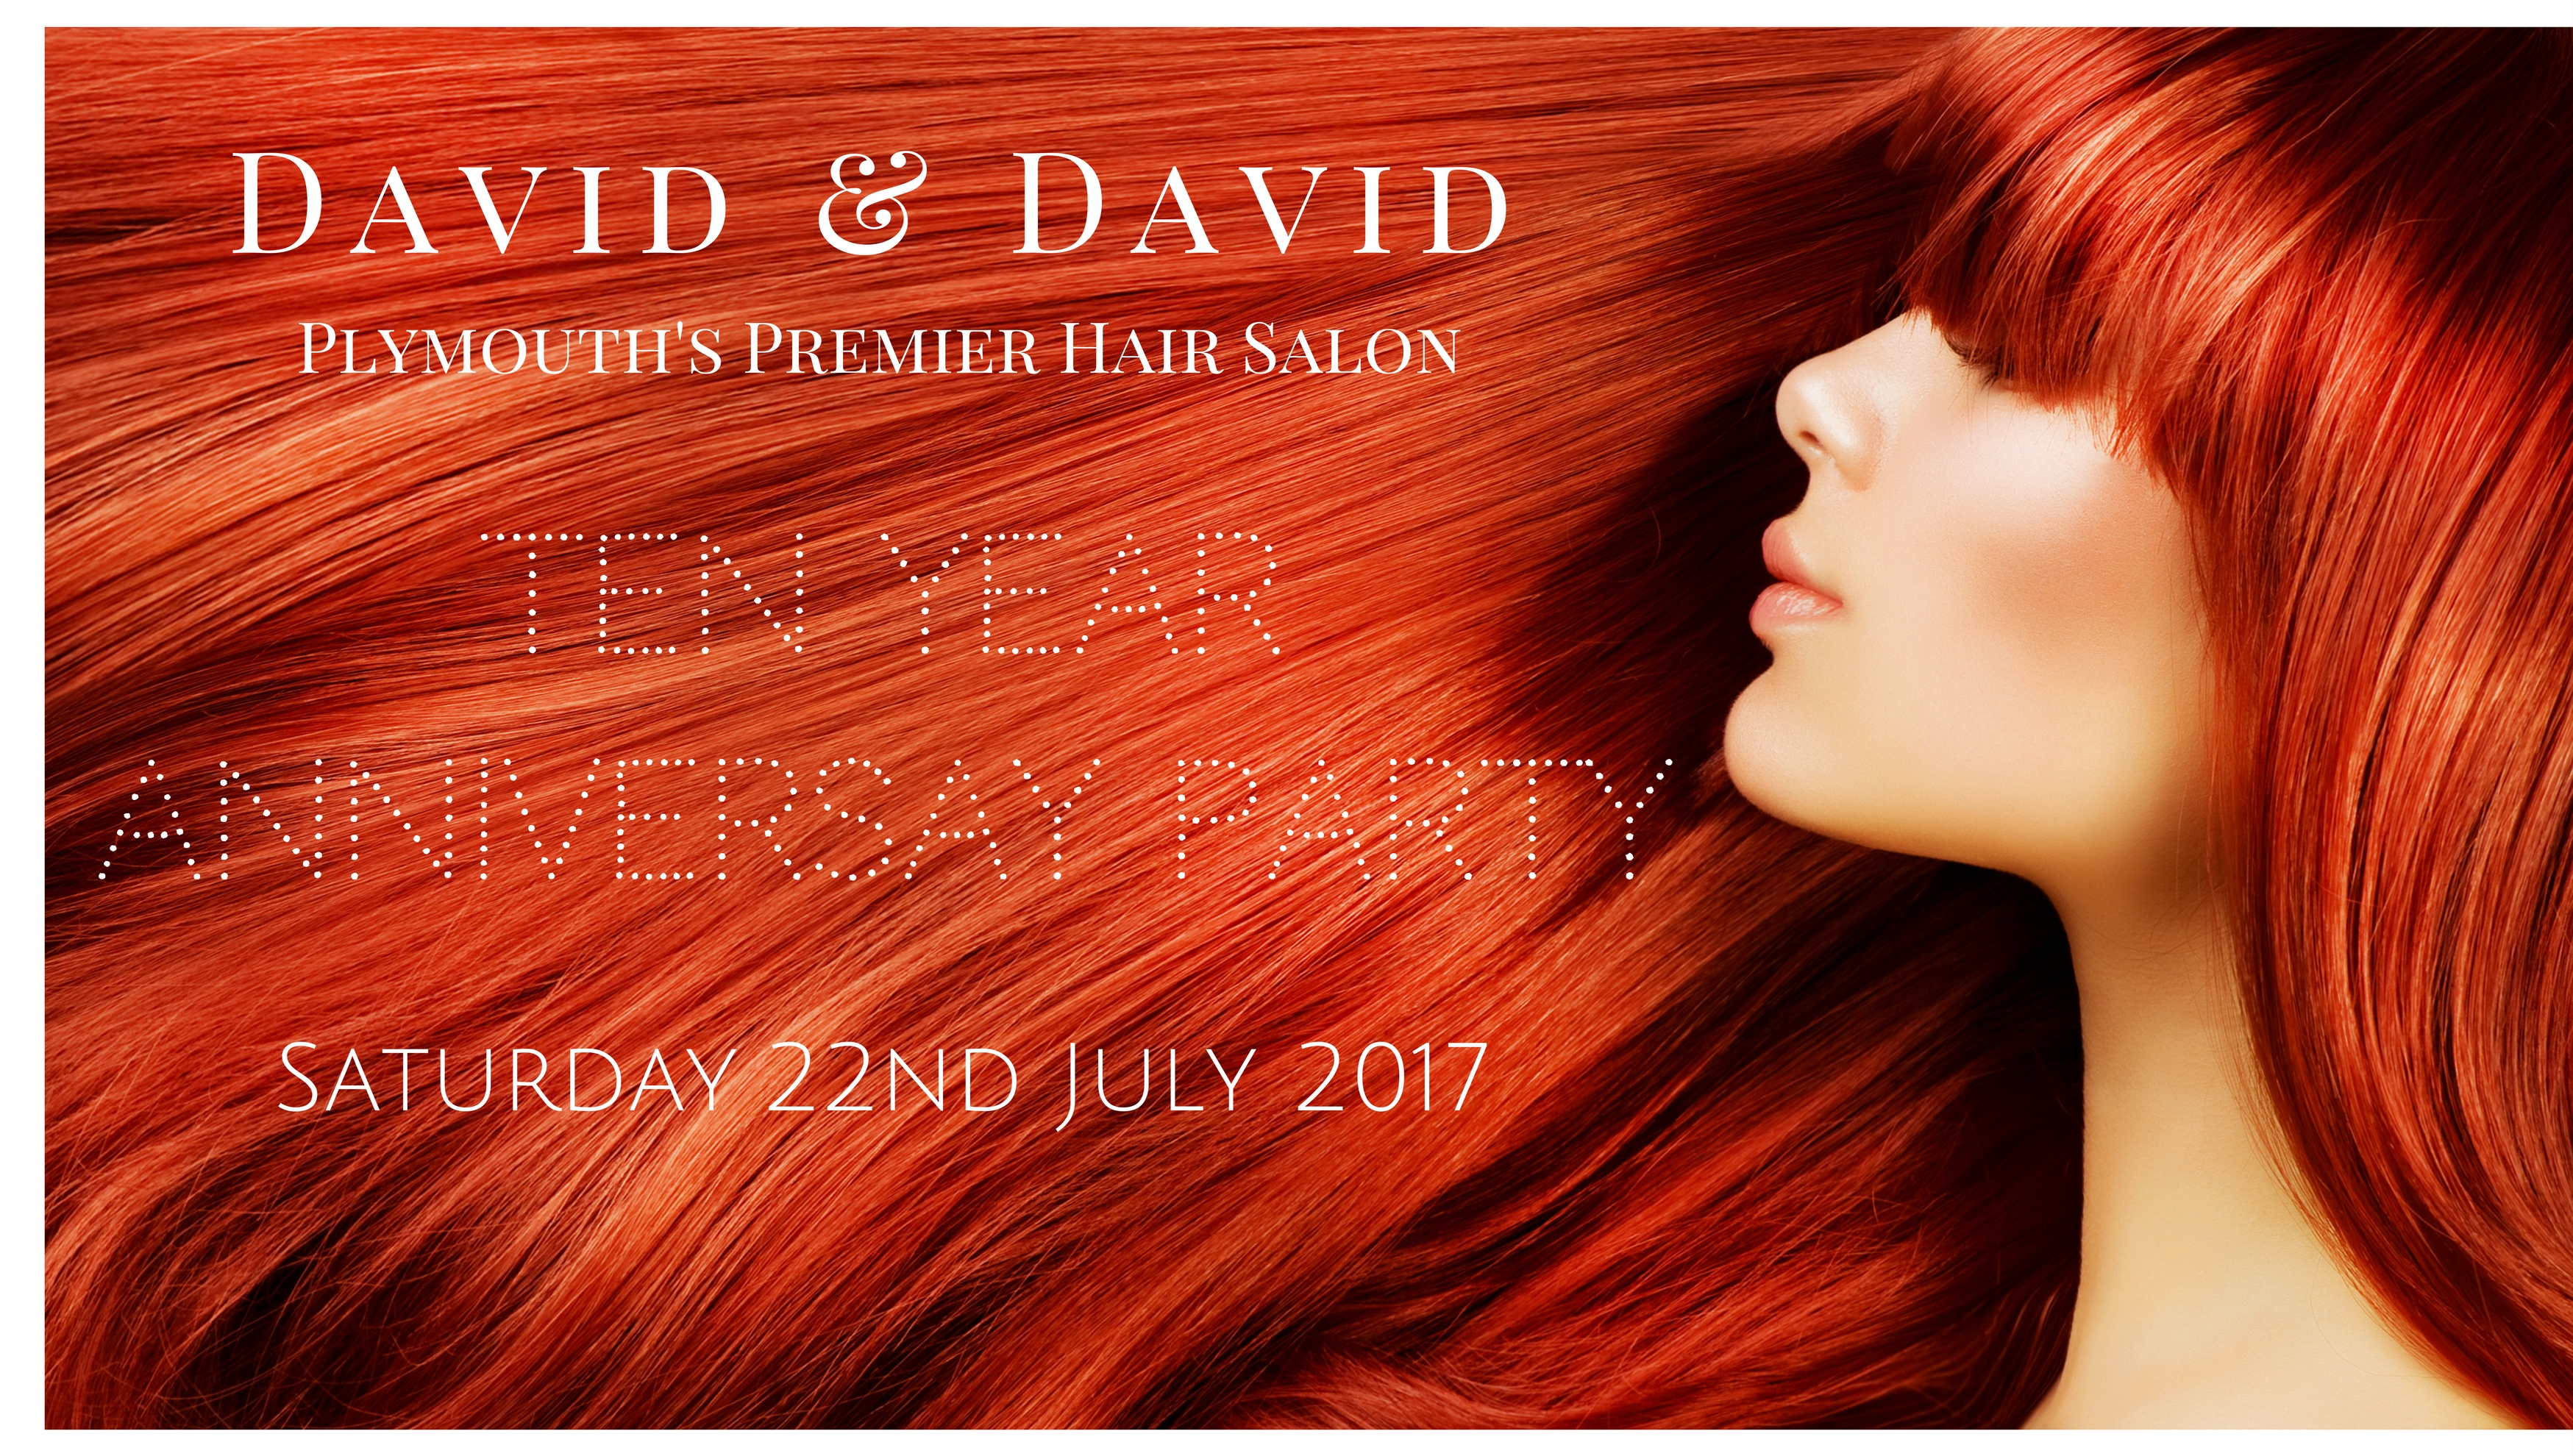 Plymouth's Premier Hair Salon Celebrates a Decade of